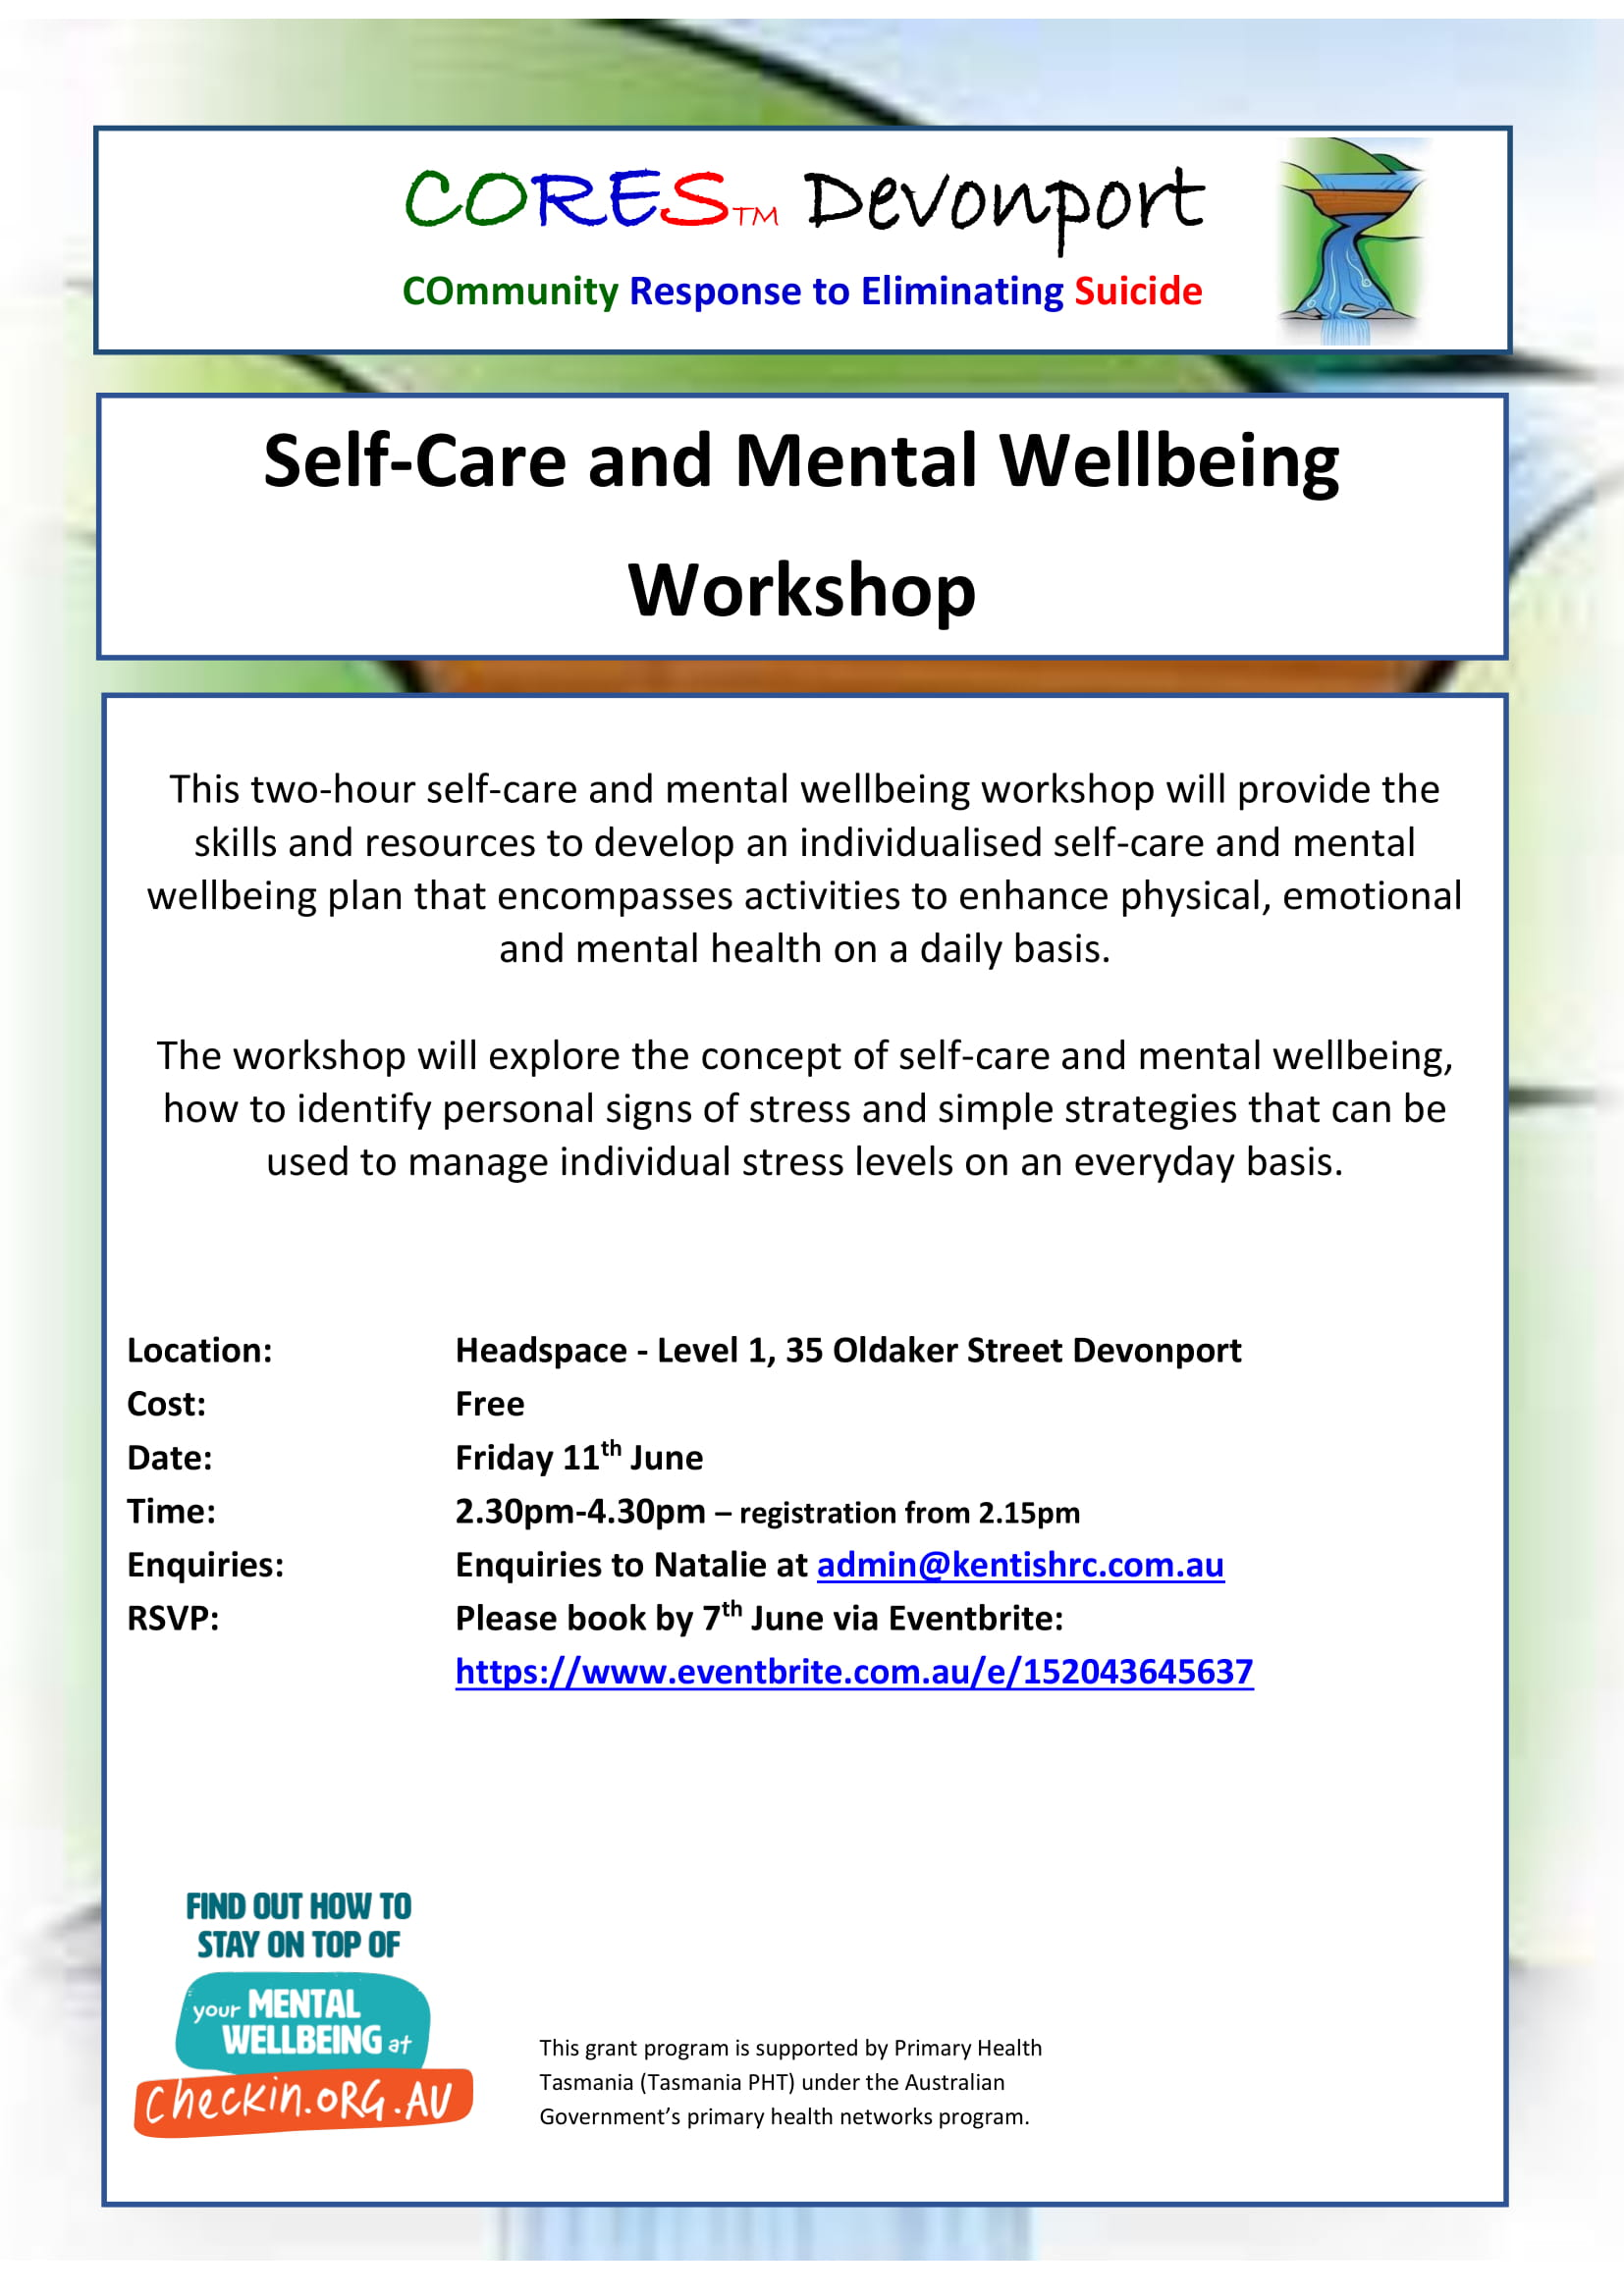 CORES Self-Care and Mental Wellbeing Devonport June 2021-1